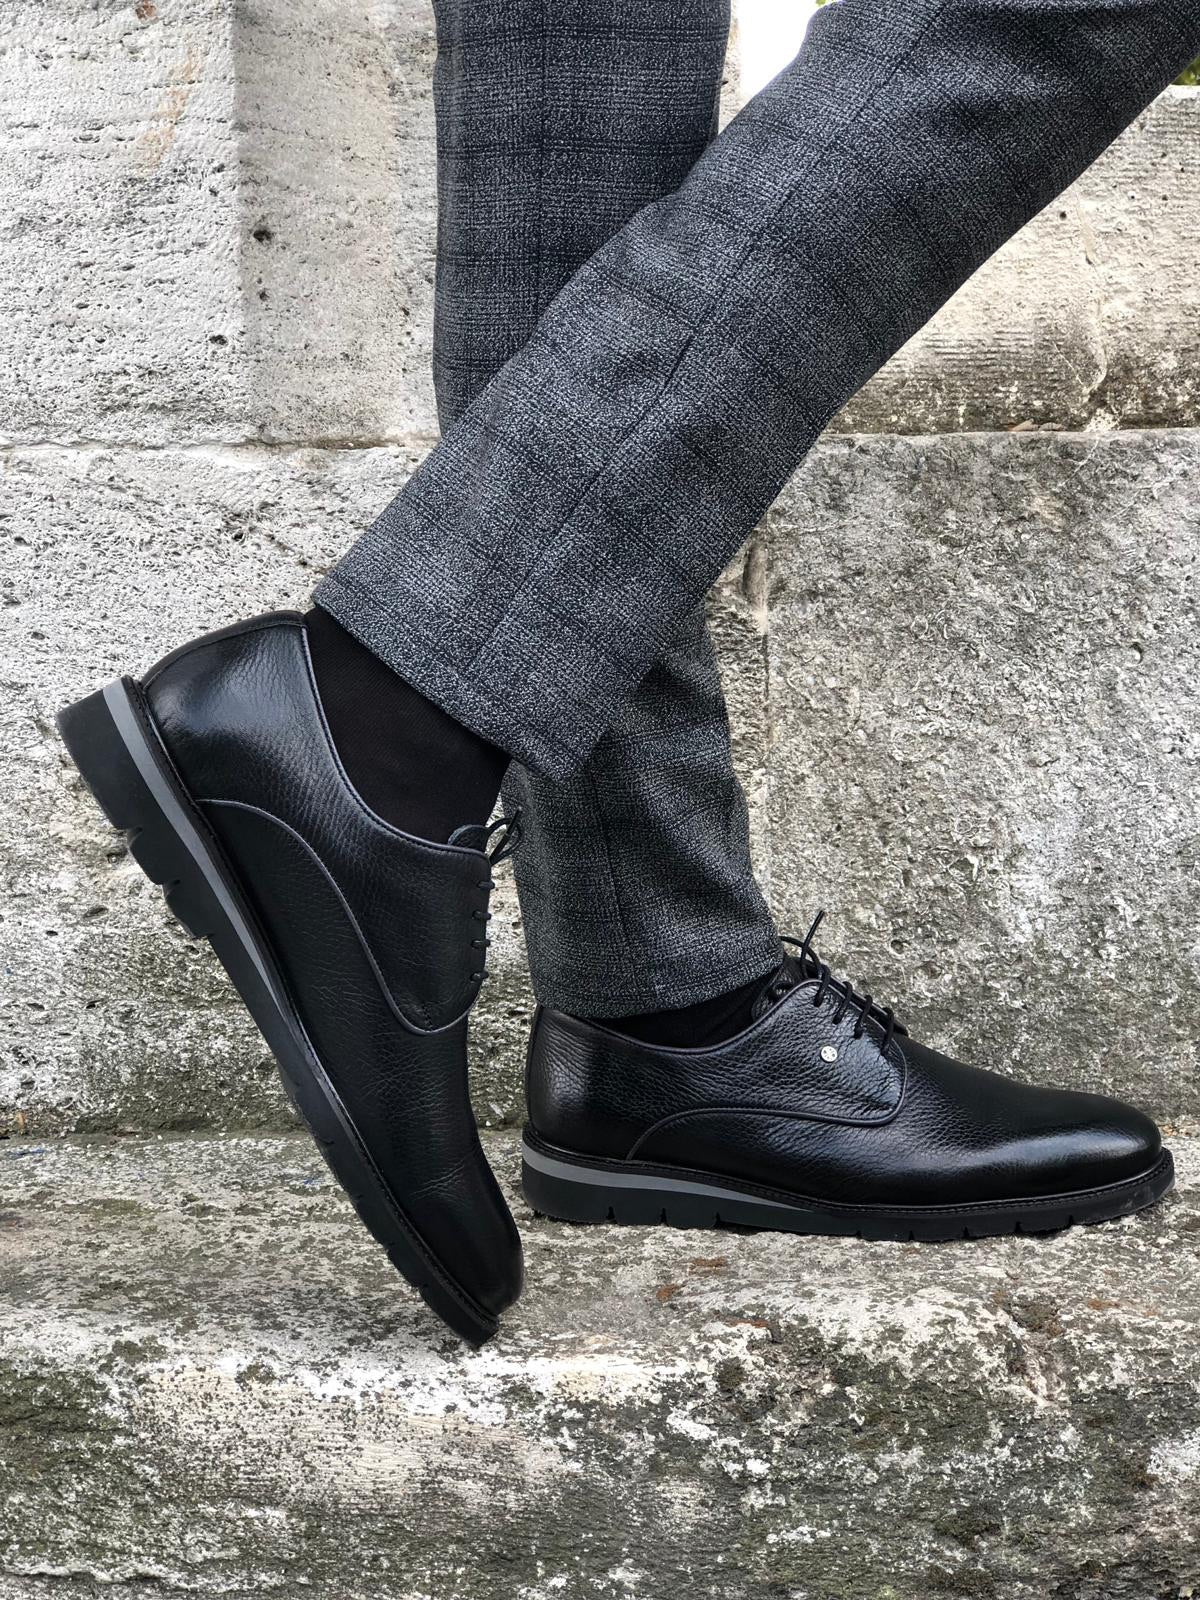 The Rebe Black Laced Oxfords